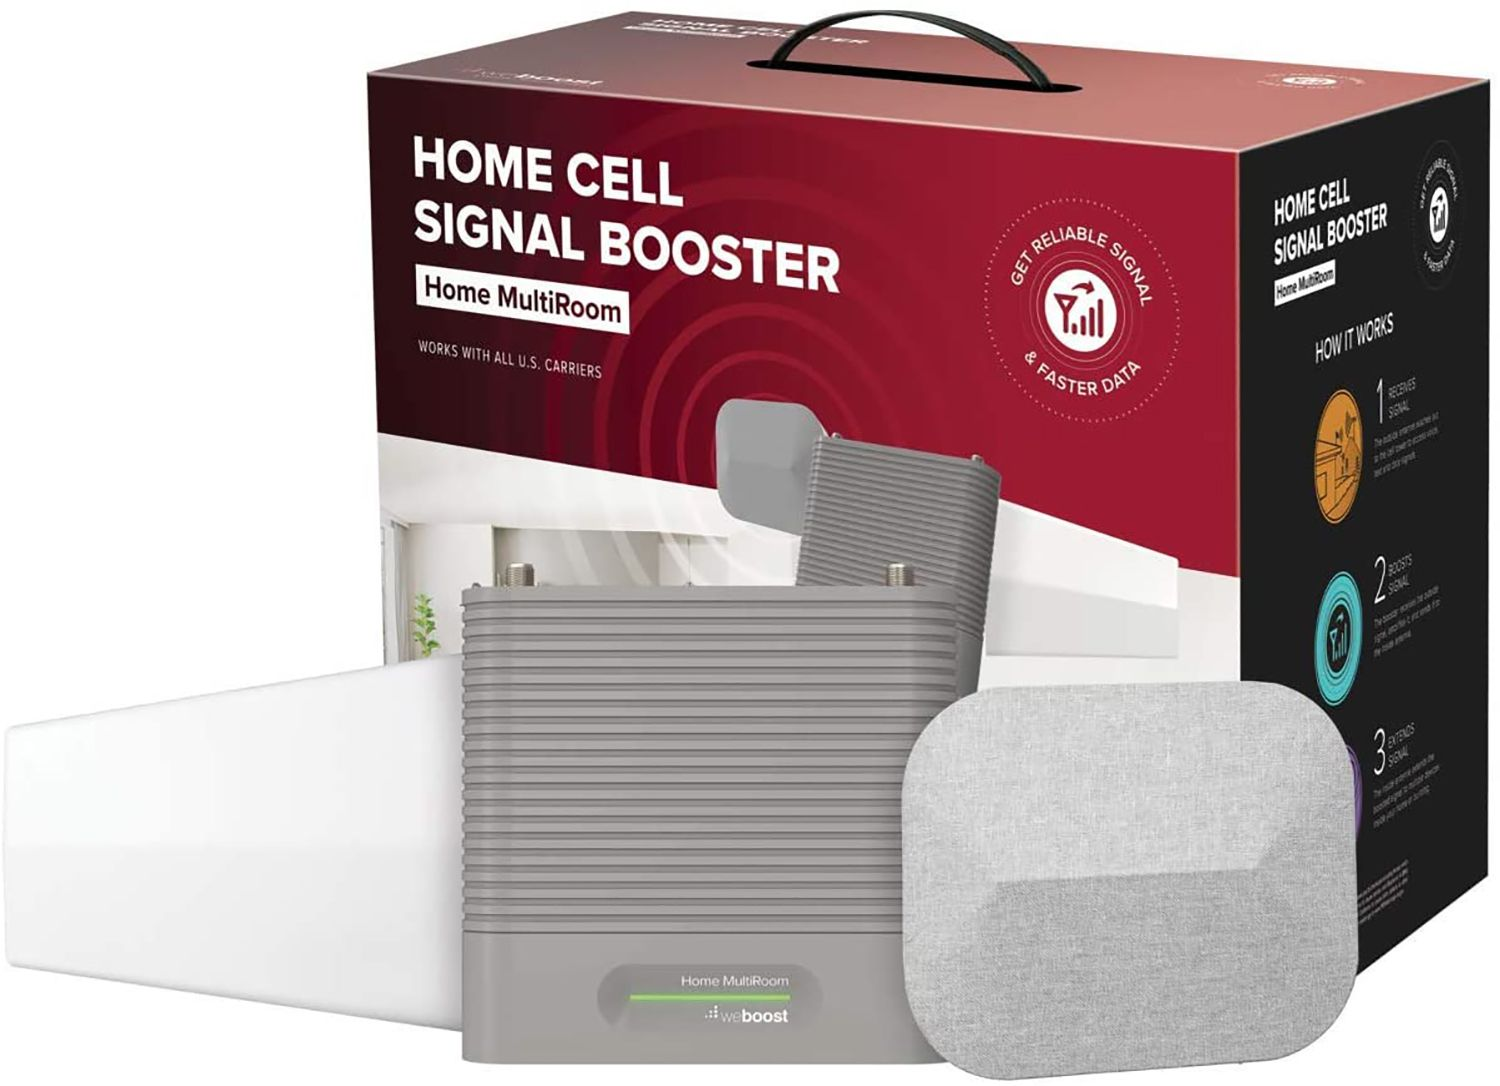 weBoost Home Cell Signal Booster Home MultiRoom